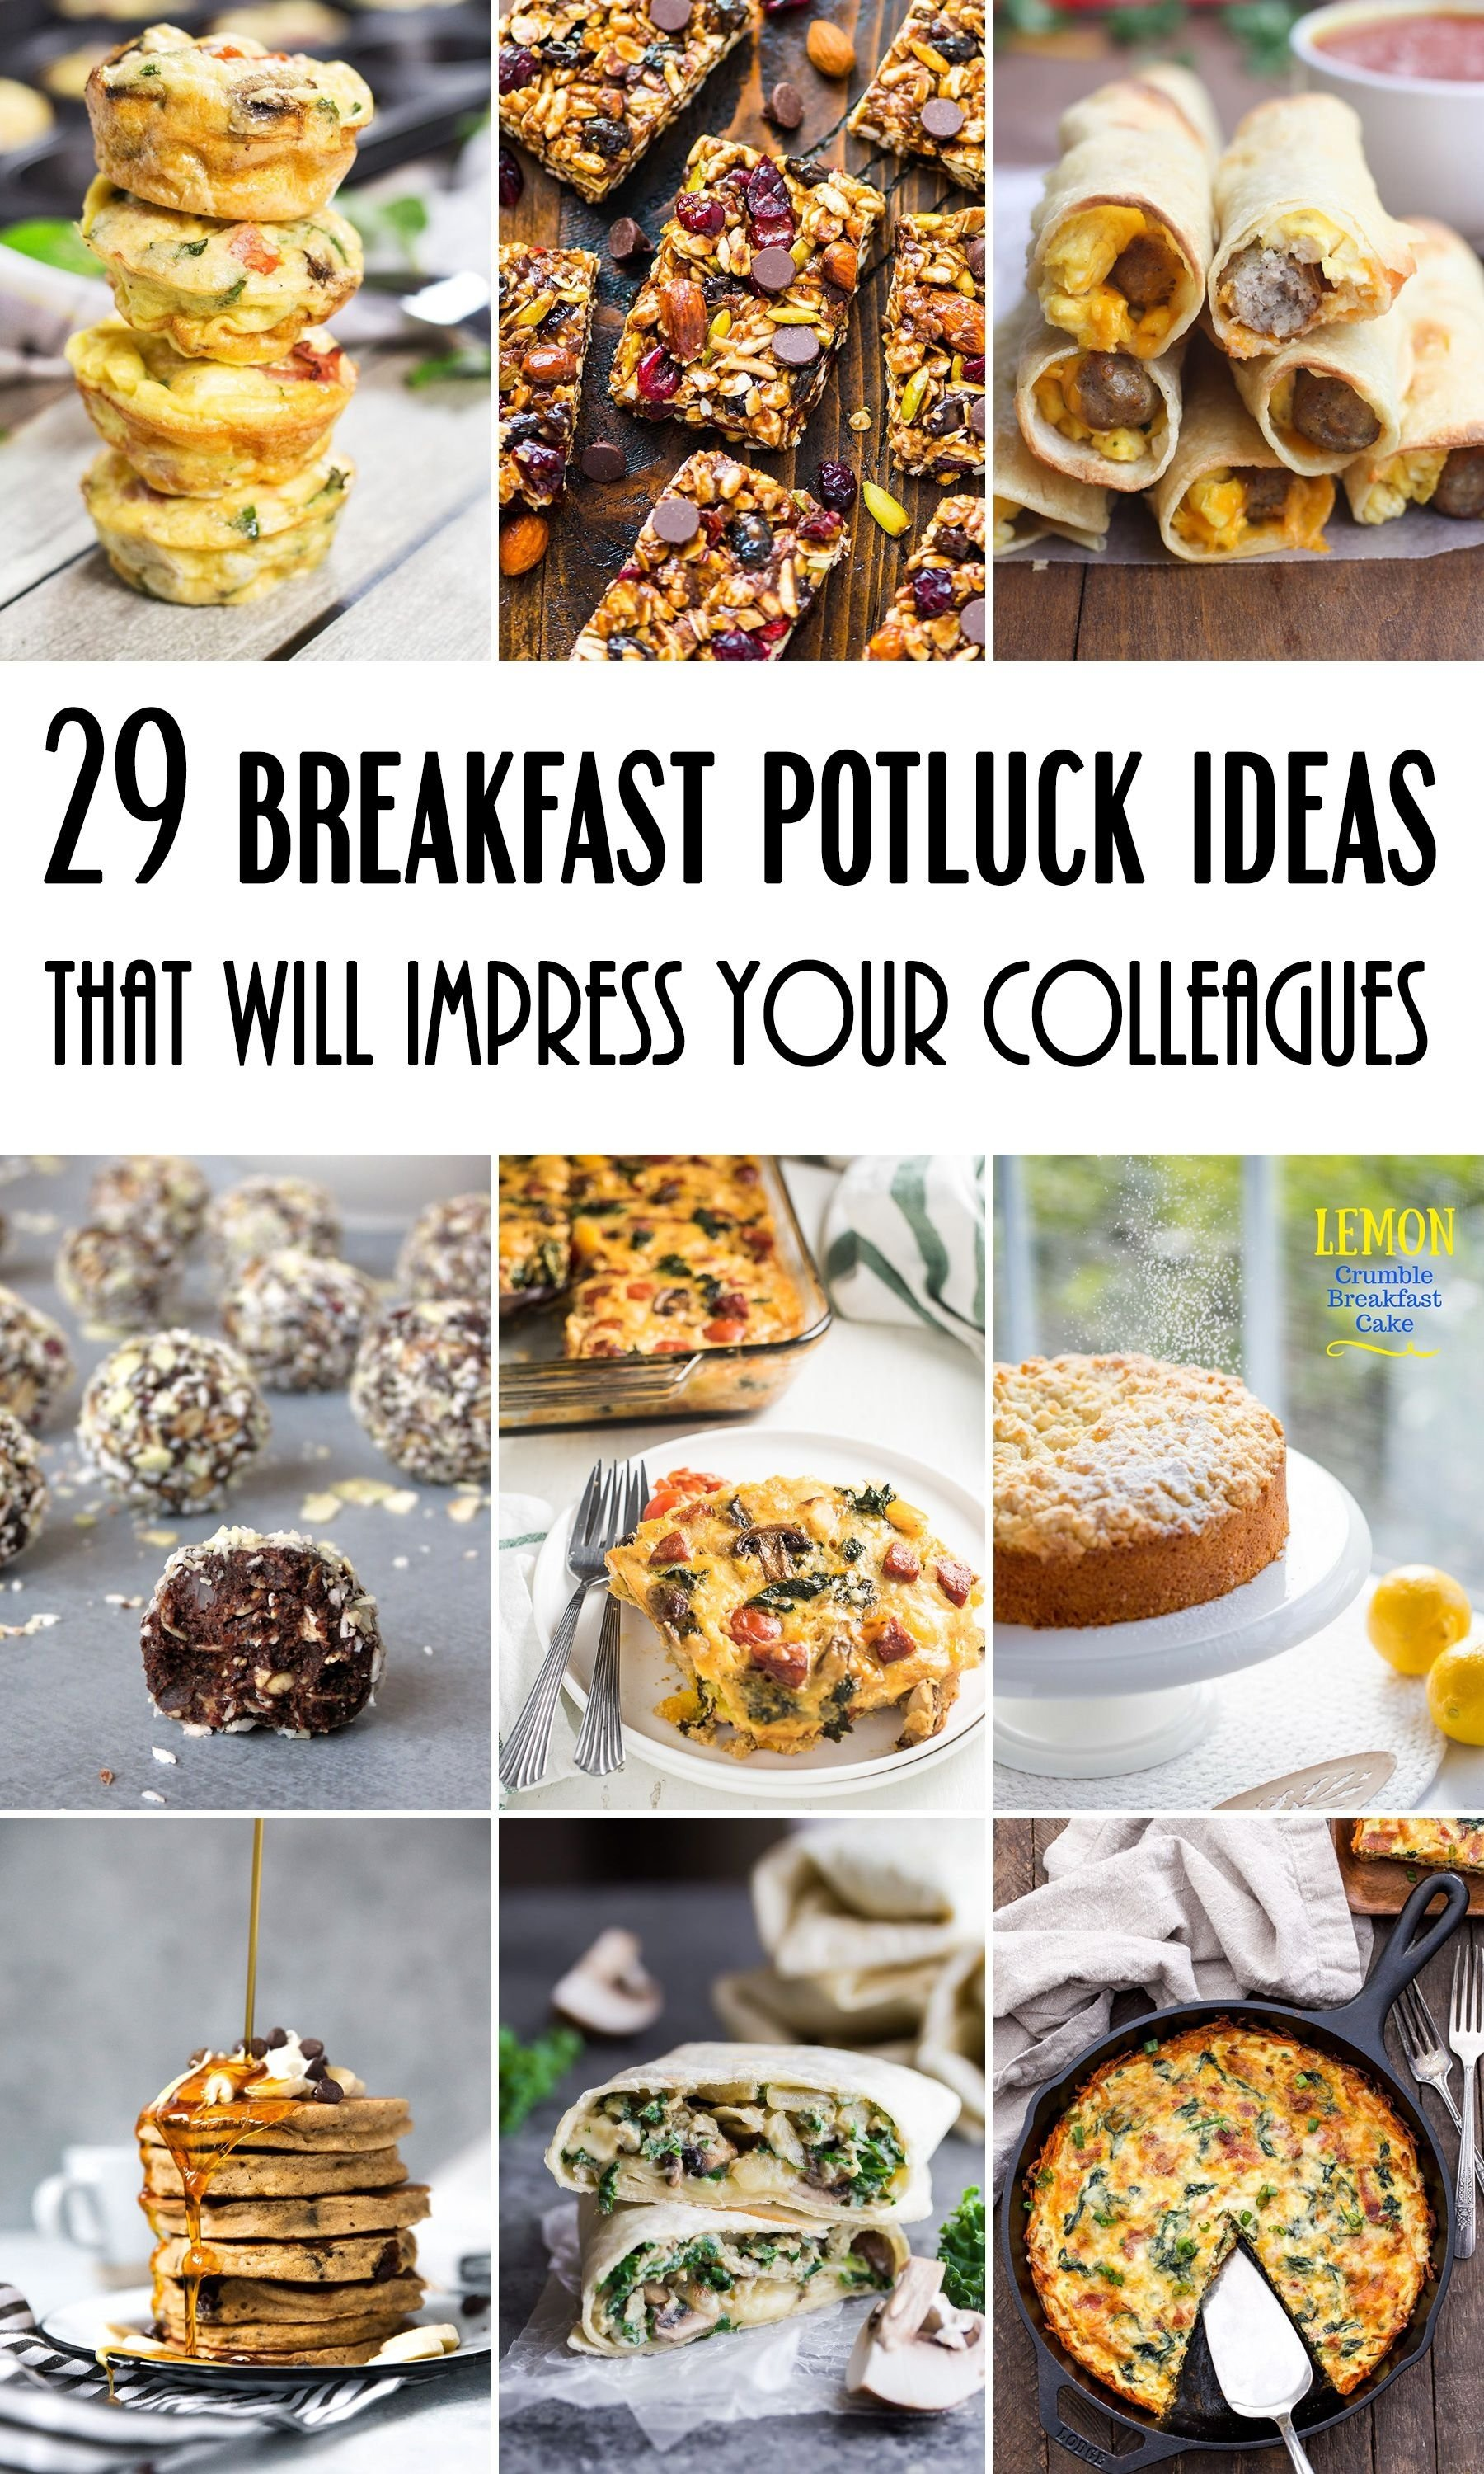 10 Lovely Quick And Easy Potluck Ideas 29 breakfast potluck ideas for work that will impress your 7 2020